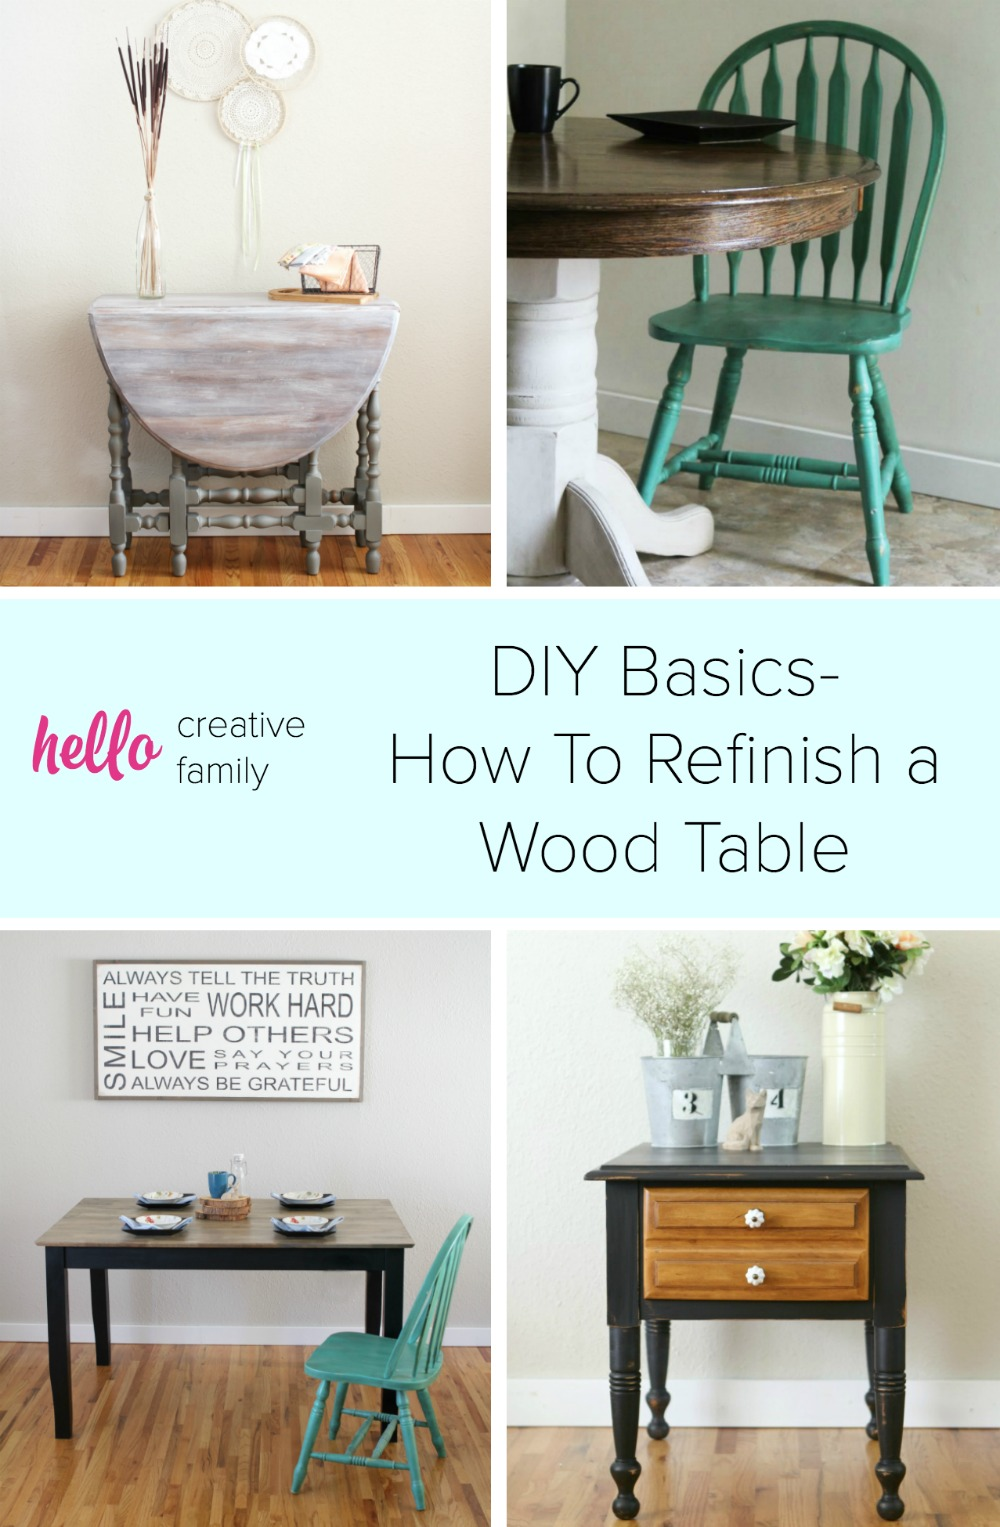 diy basics how to refinish a wood table hello creative family. Black Bedroom Furniture Sets. Home Design Ideas